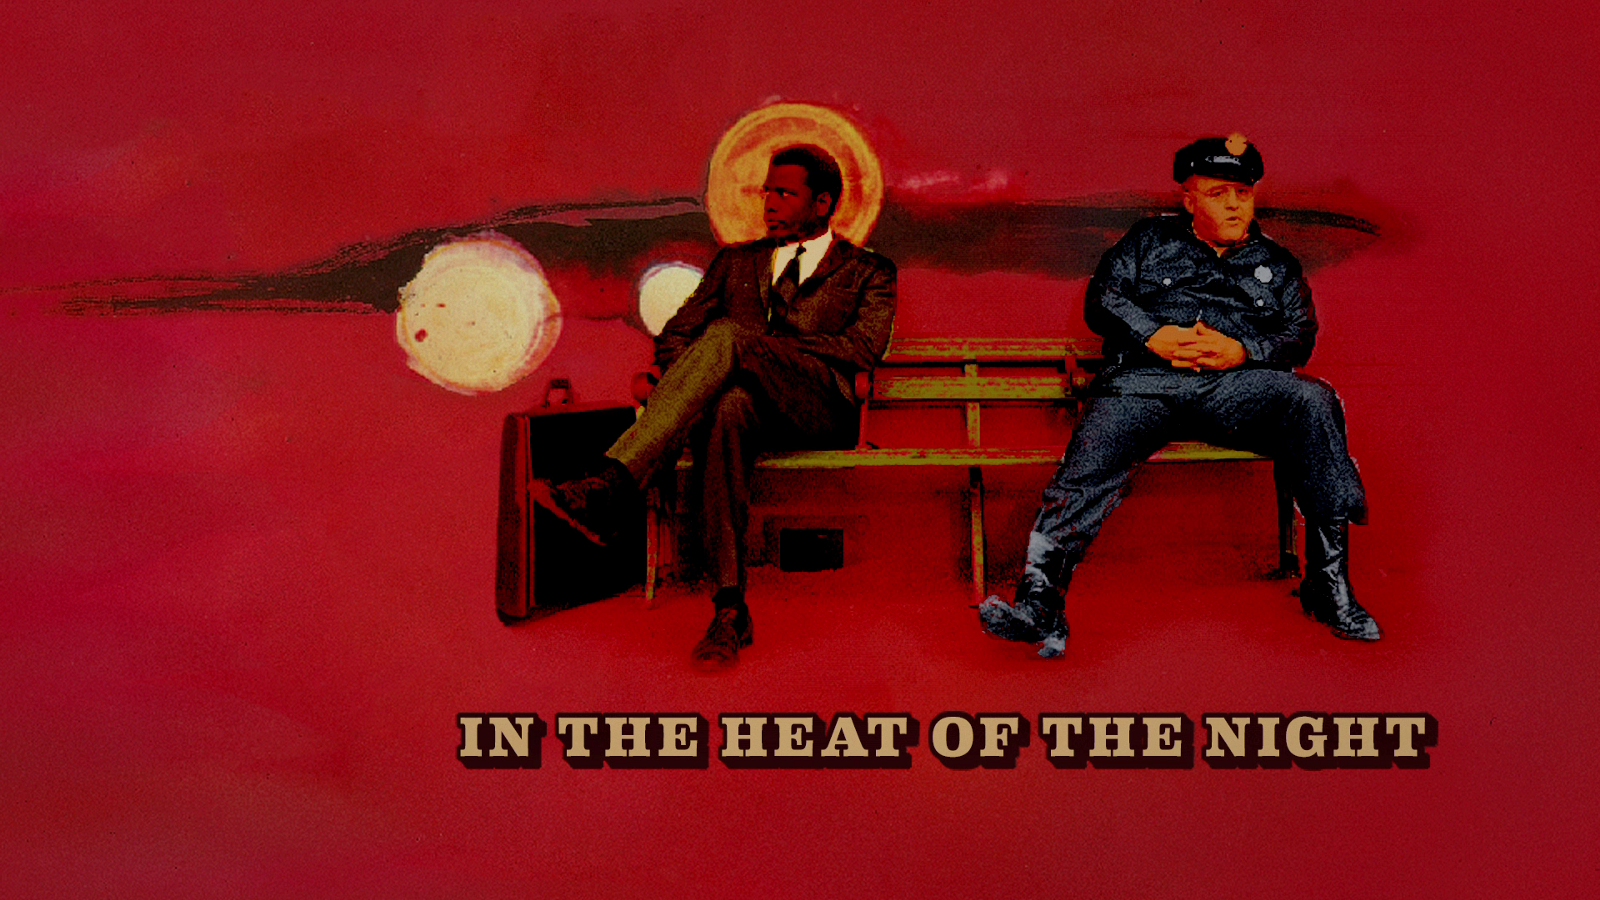 In the heat of the night essay